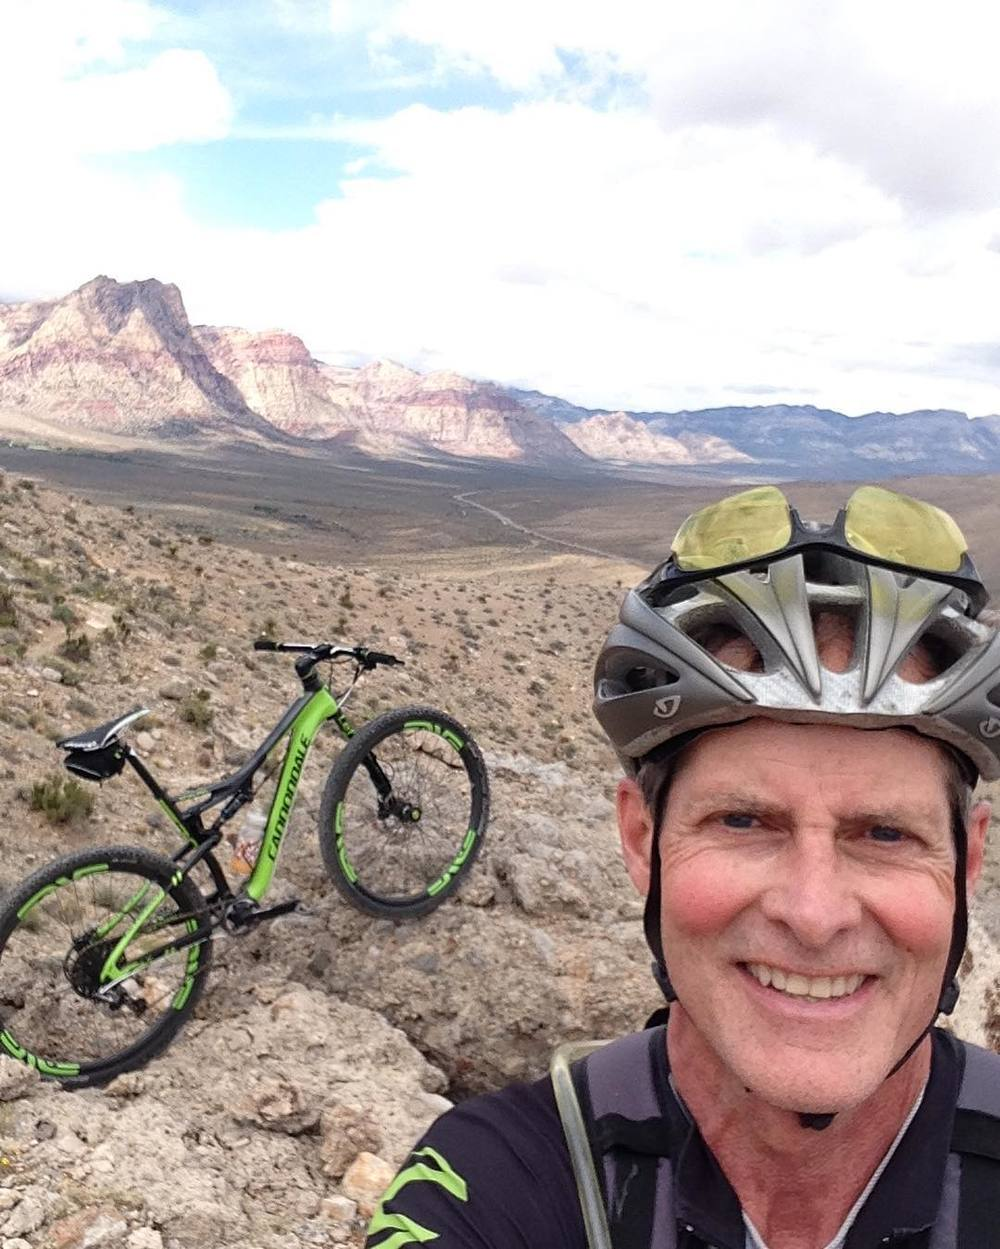 My Dad took my @ridecannondale #scalpel out west for some ridingduring the month of April. 🚐🚲☀️ http://ift.tt/20qKqv7